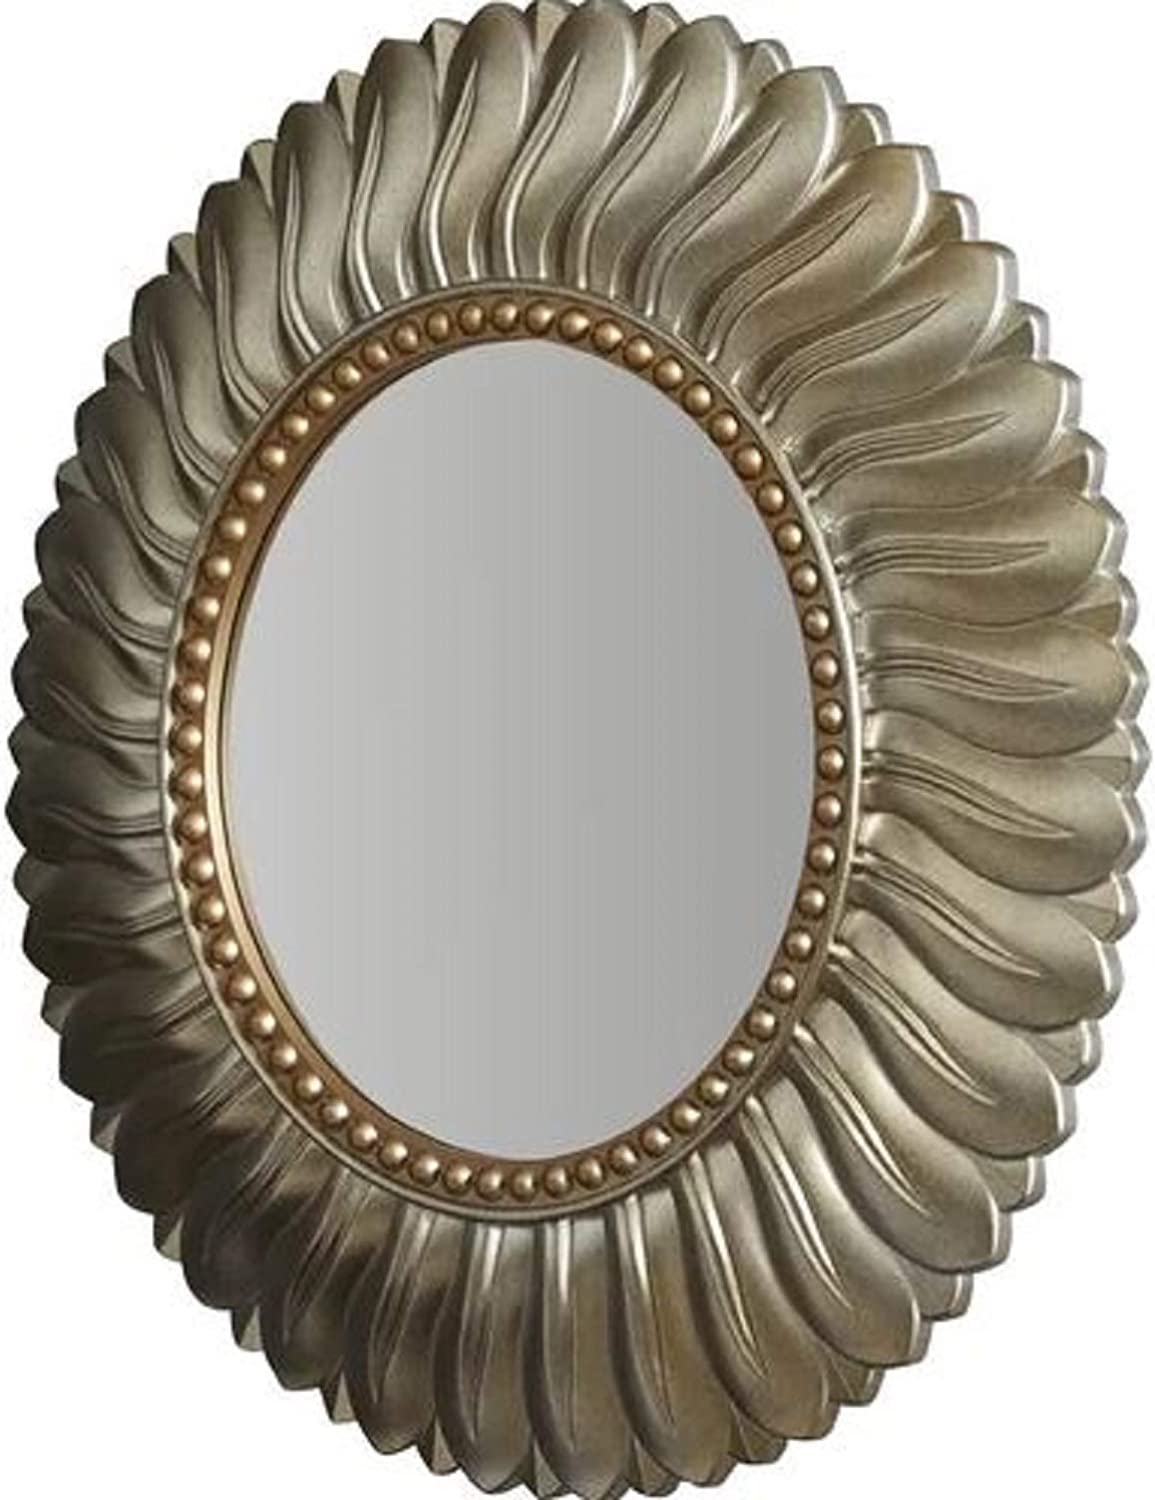 House Decoration Modern Accent Mirror. Feathered Design Karn greenical Round Resin Wall House Decoration Modern Accent Mirror with Nailhead Trim gold